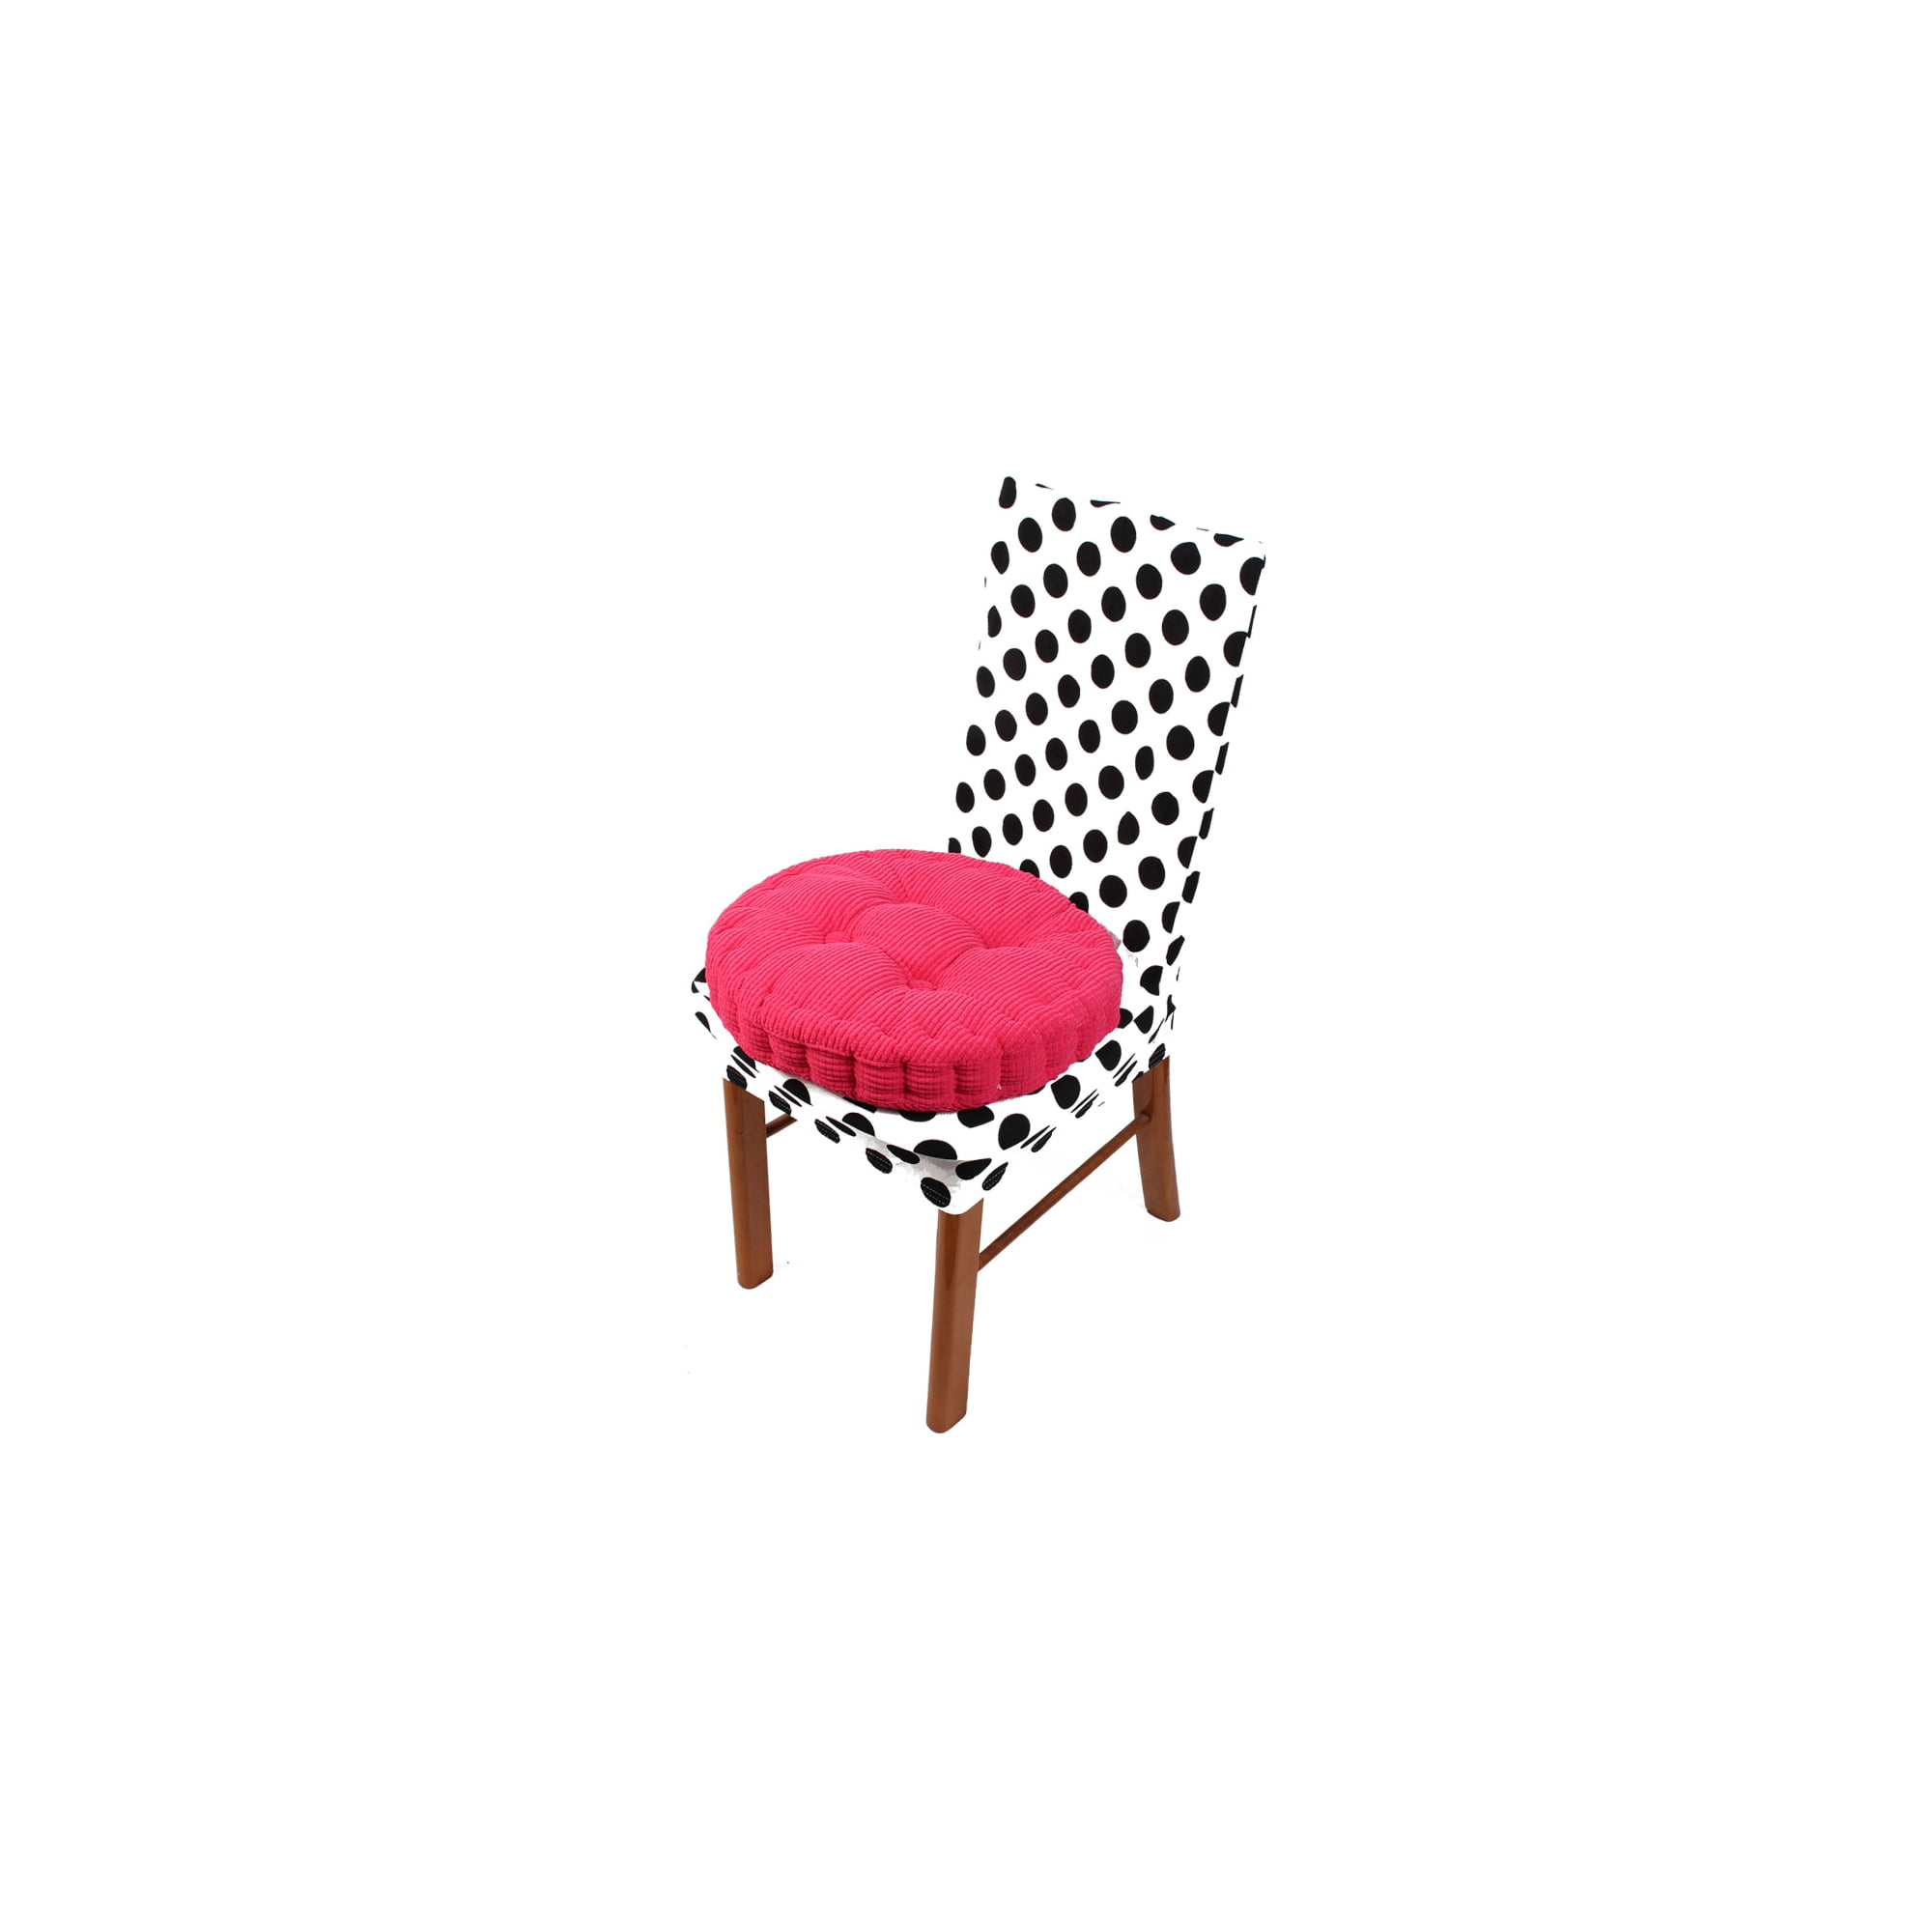 Pillow Seat Chair Cushion Pad